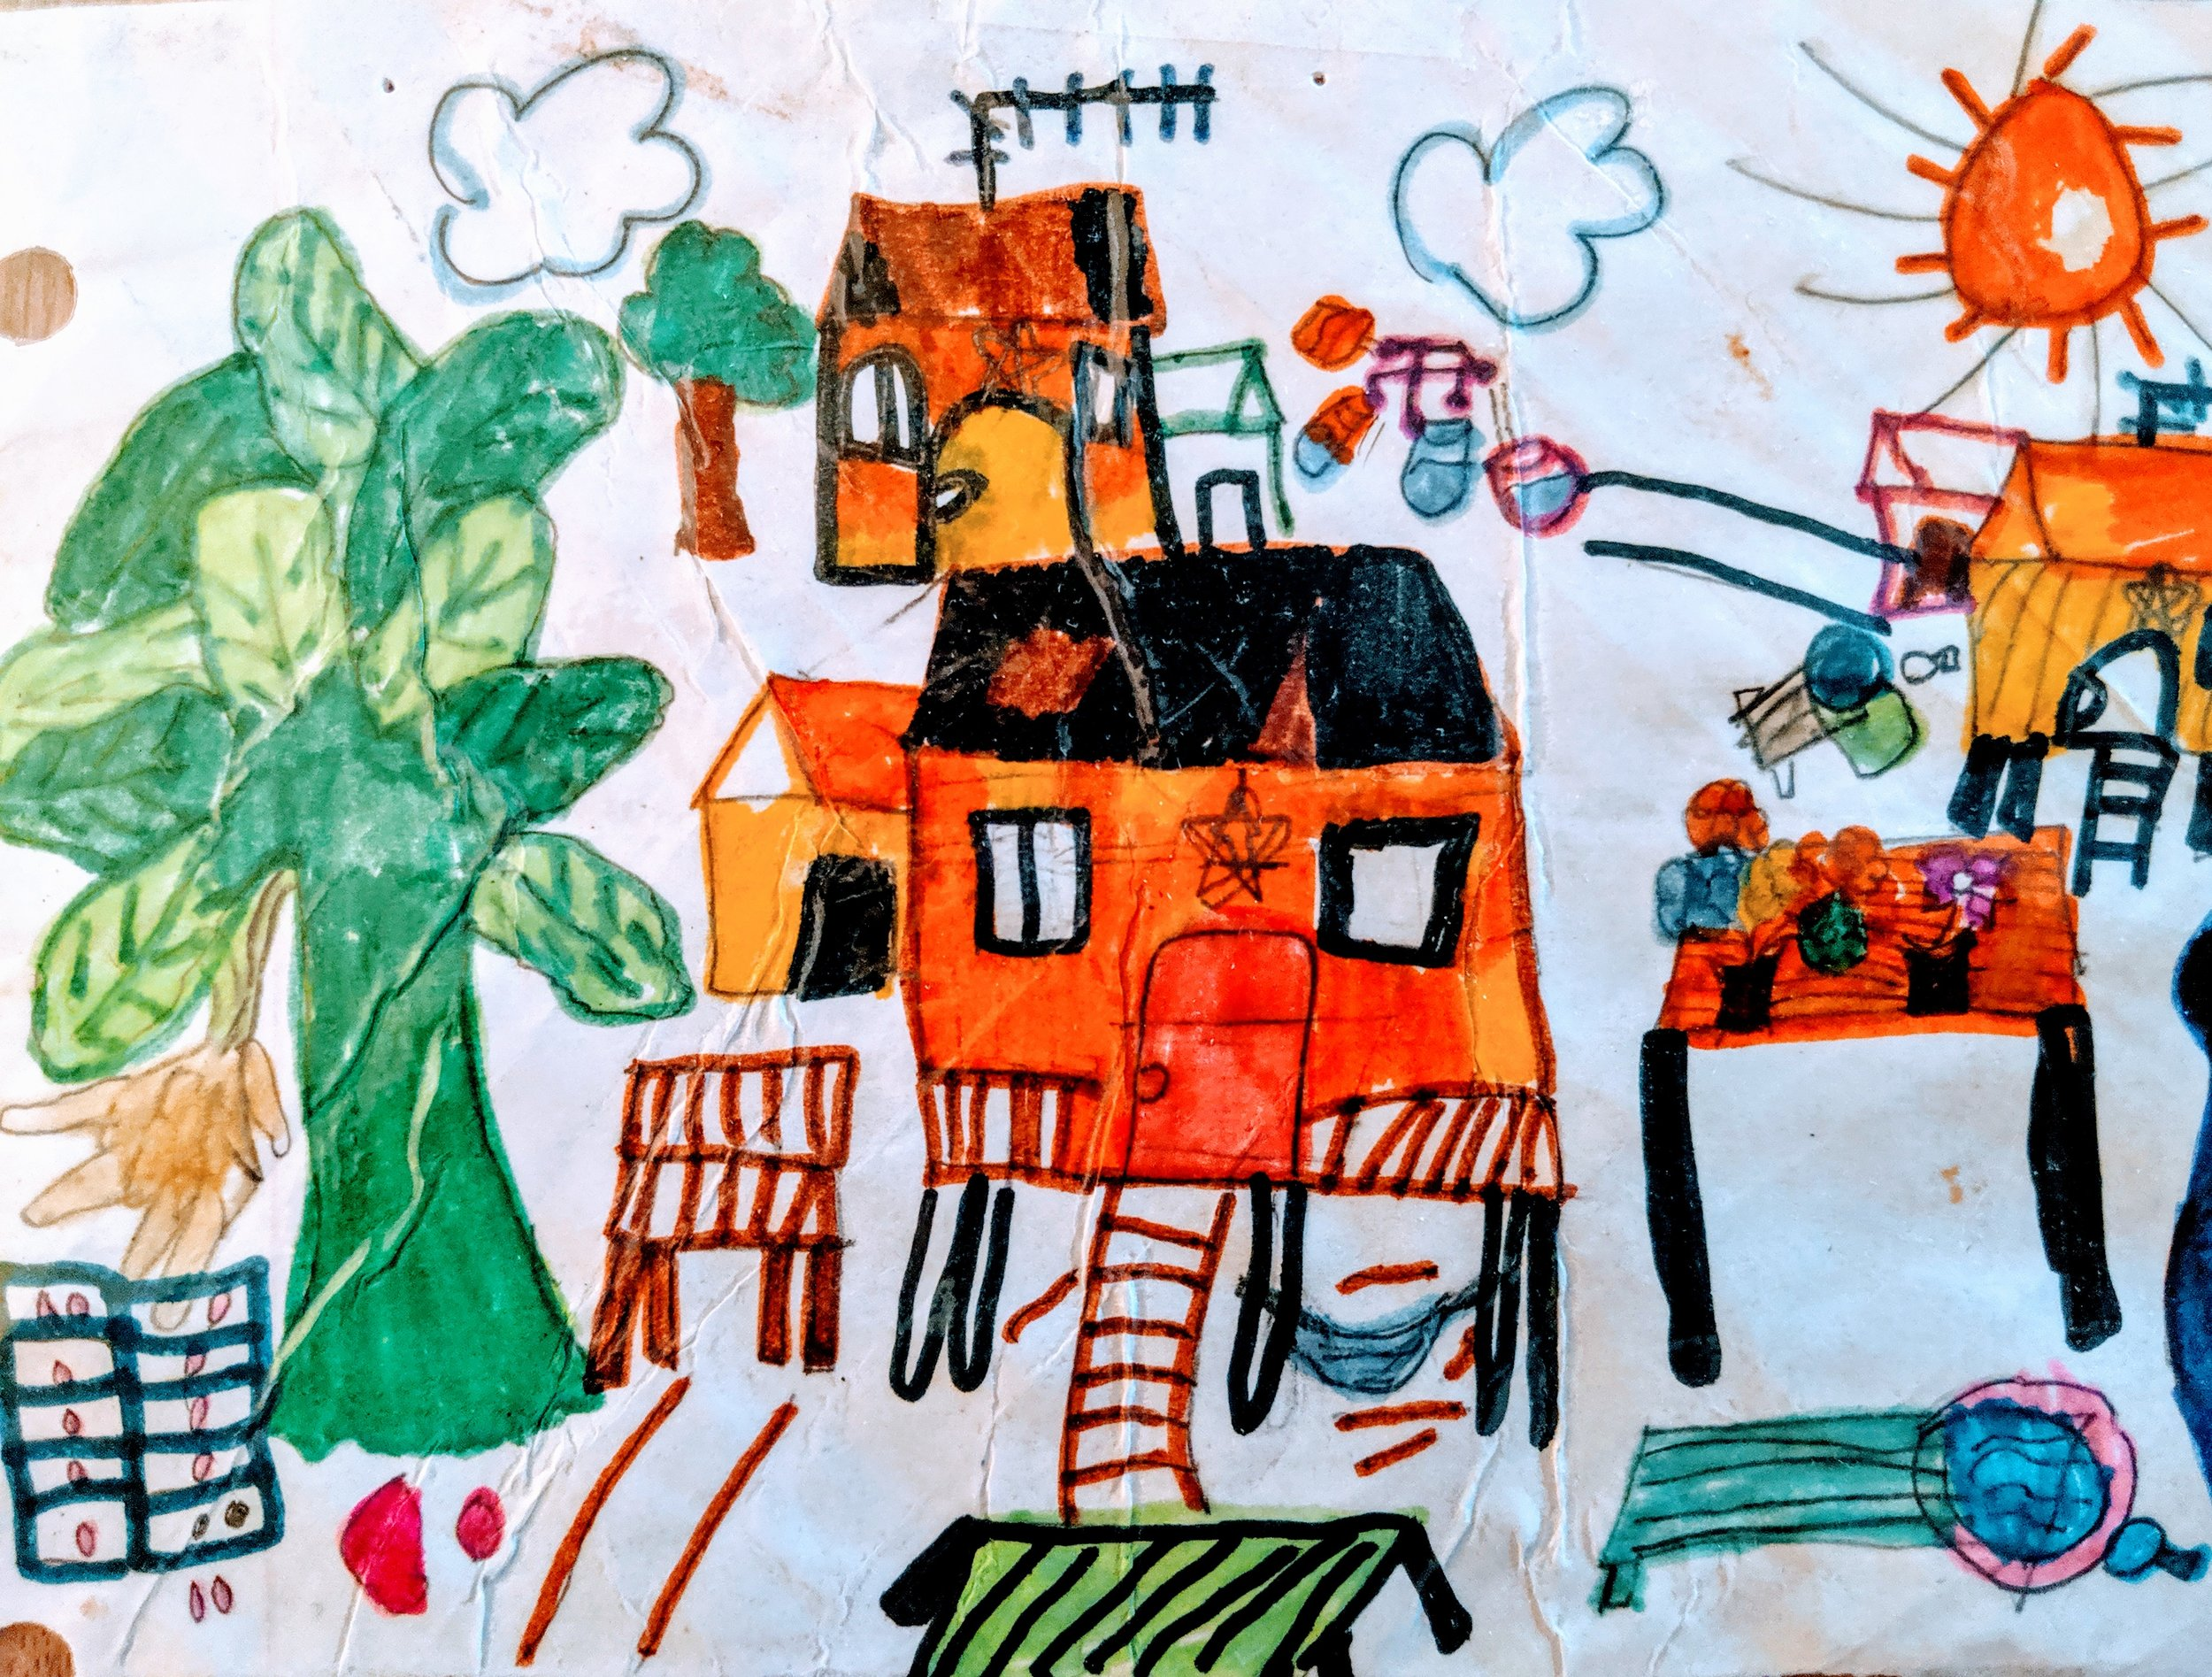 Drawing by former student Pah Leh Paw (age 9), depicting the Thai refugee camp where she grew up, after her family fled from the Karen cultural region of Myanmar Burma.